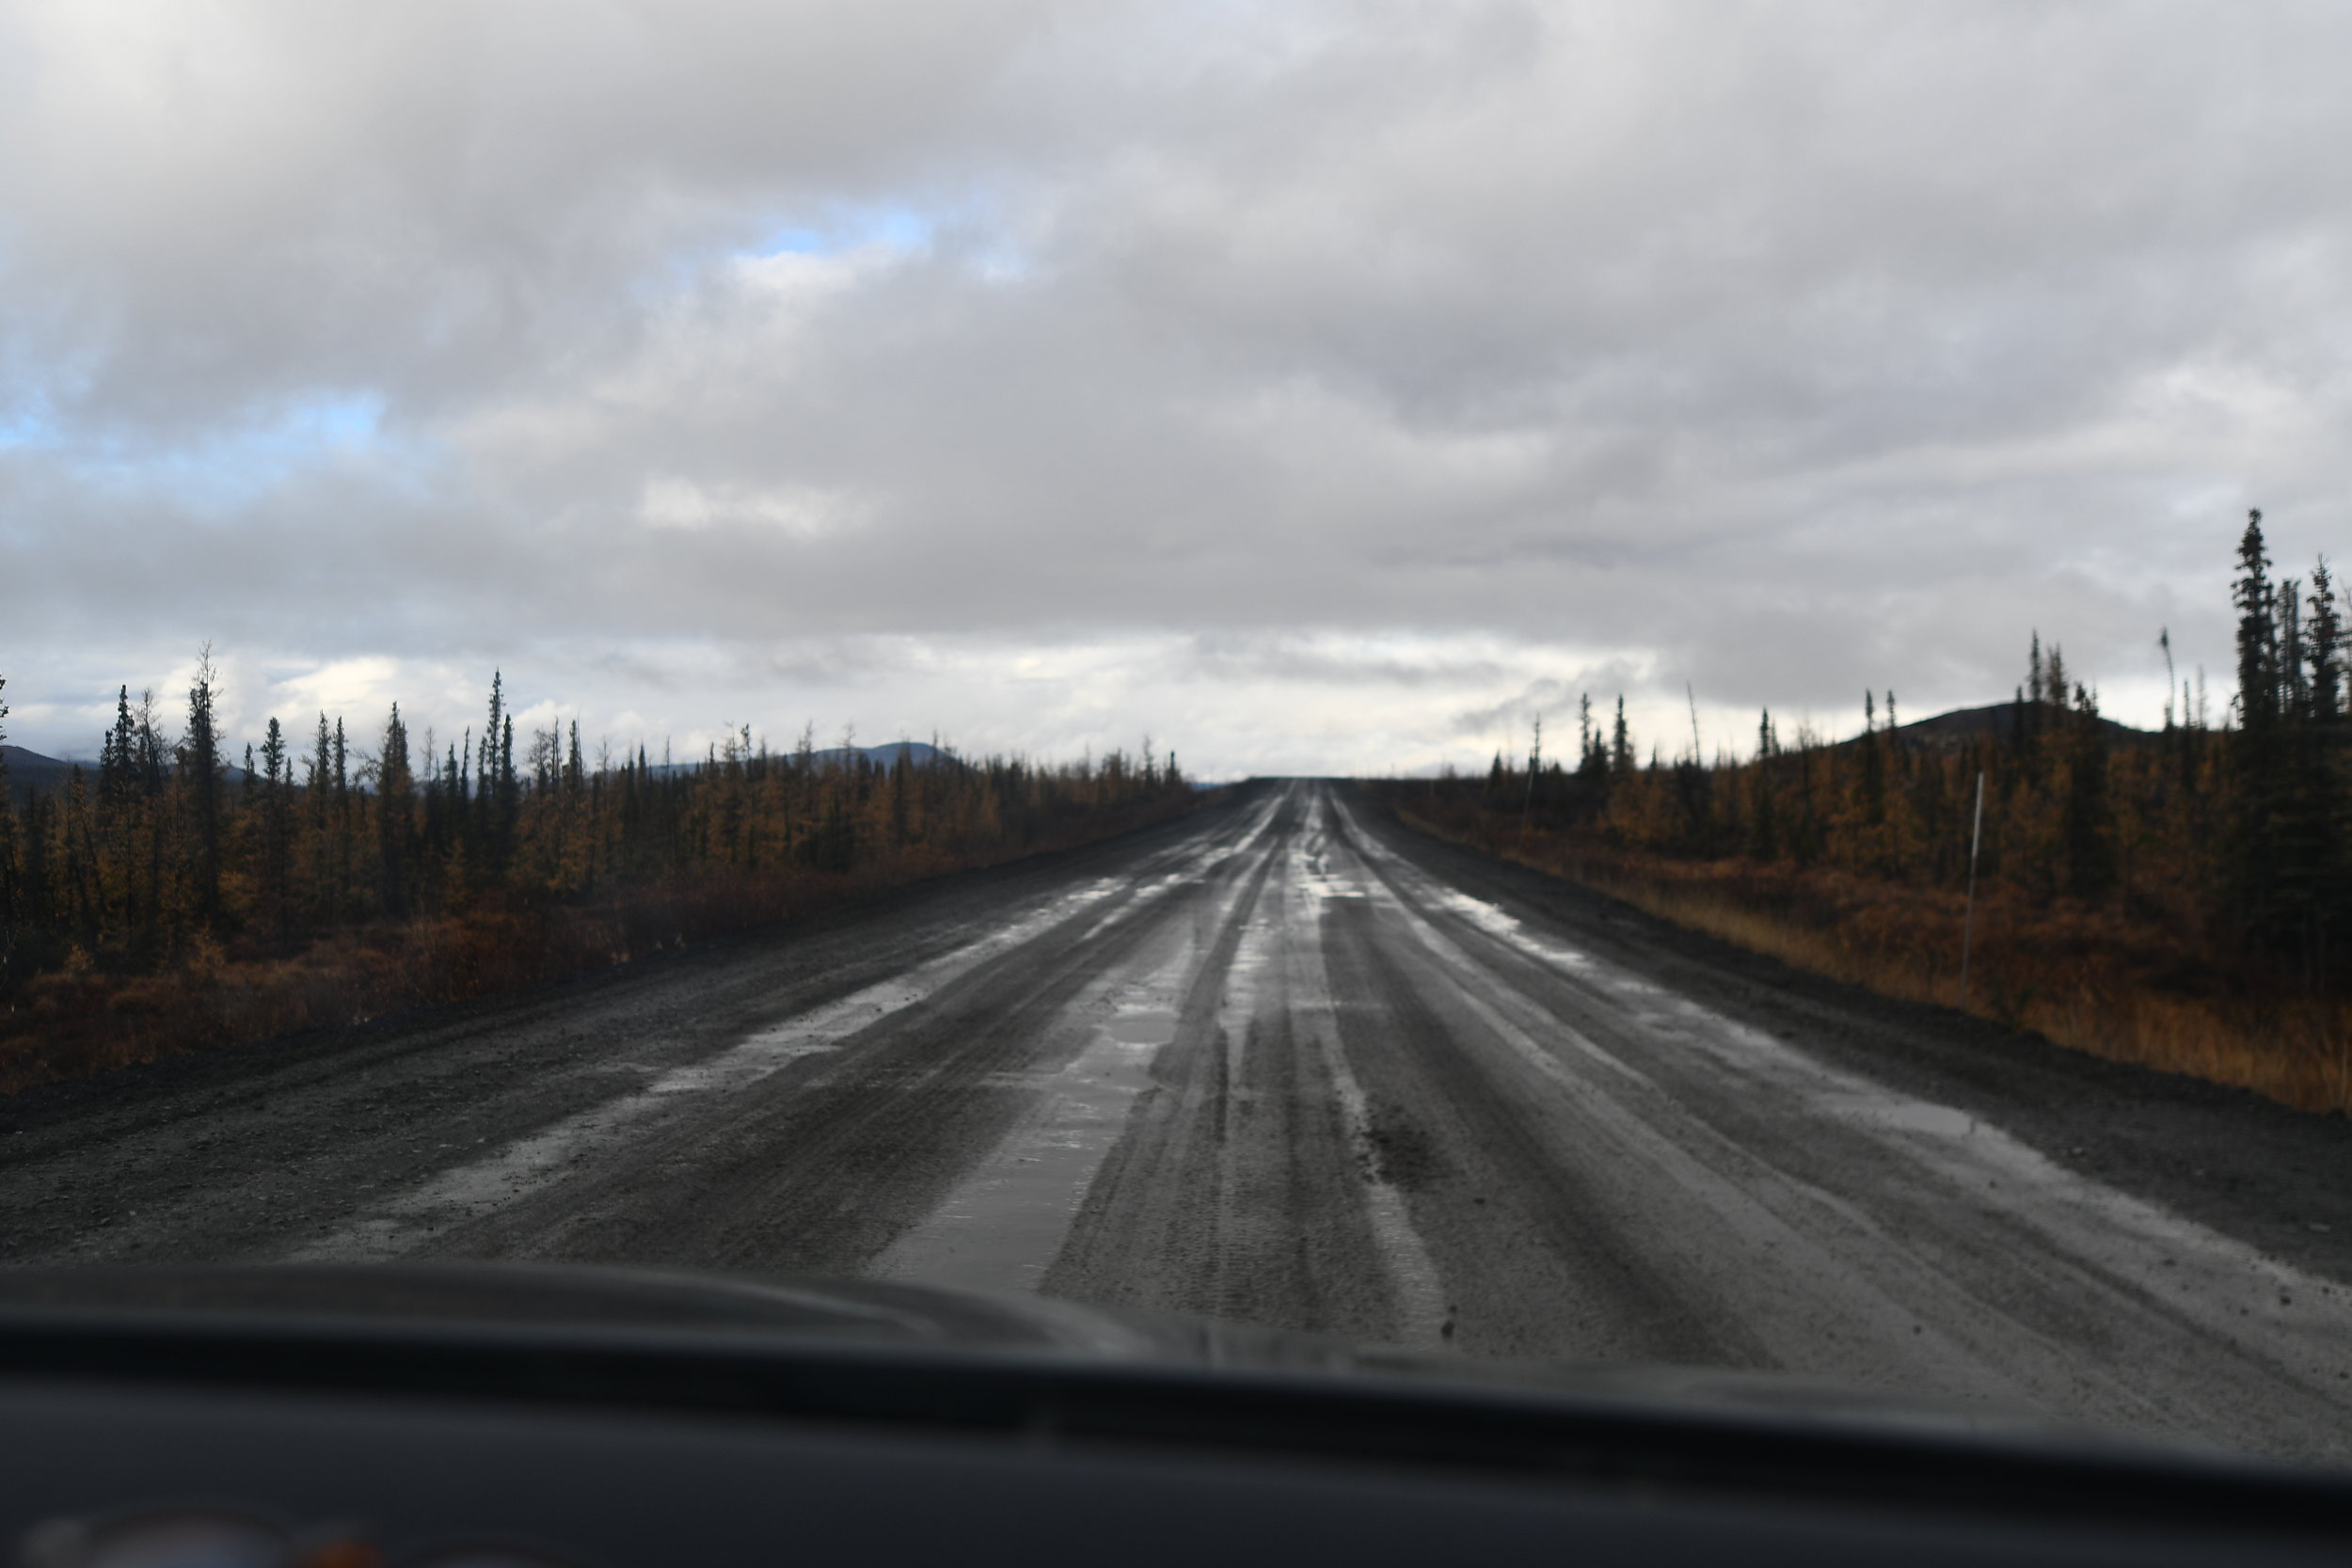 Dempster Highway! One of the craziest stretch of roads in the Americas. It is NOT recommended to do it on summer tires in the Fall, like we did.